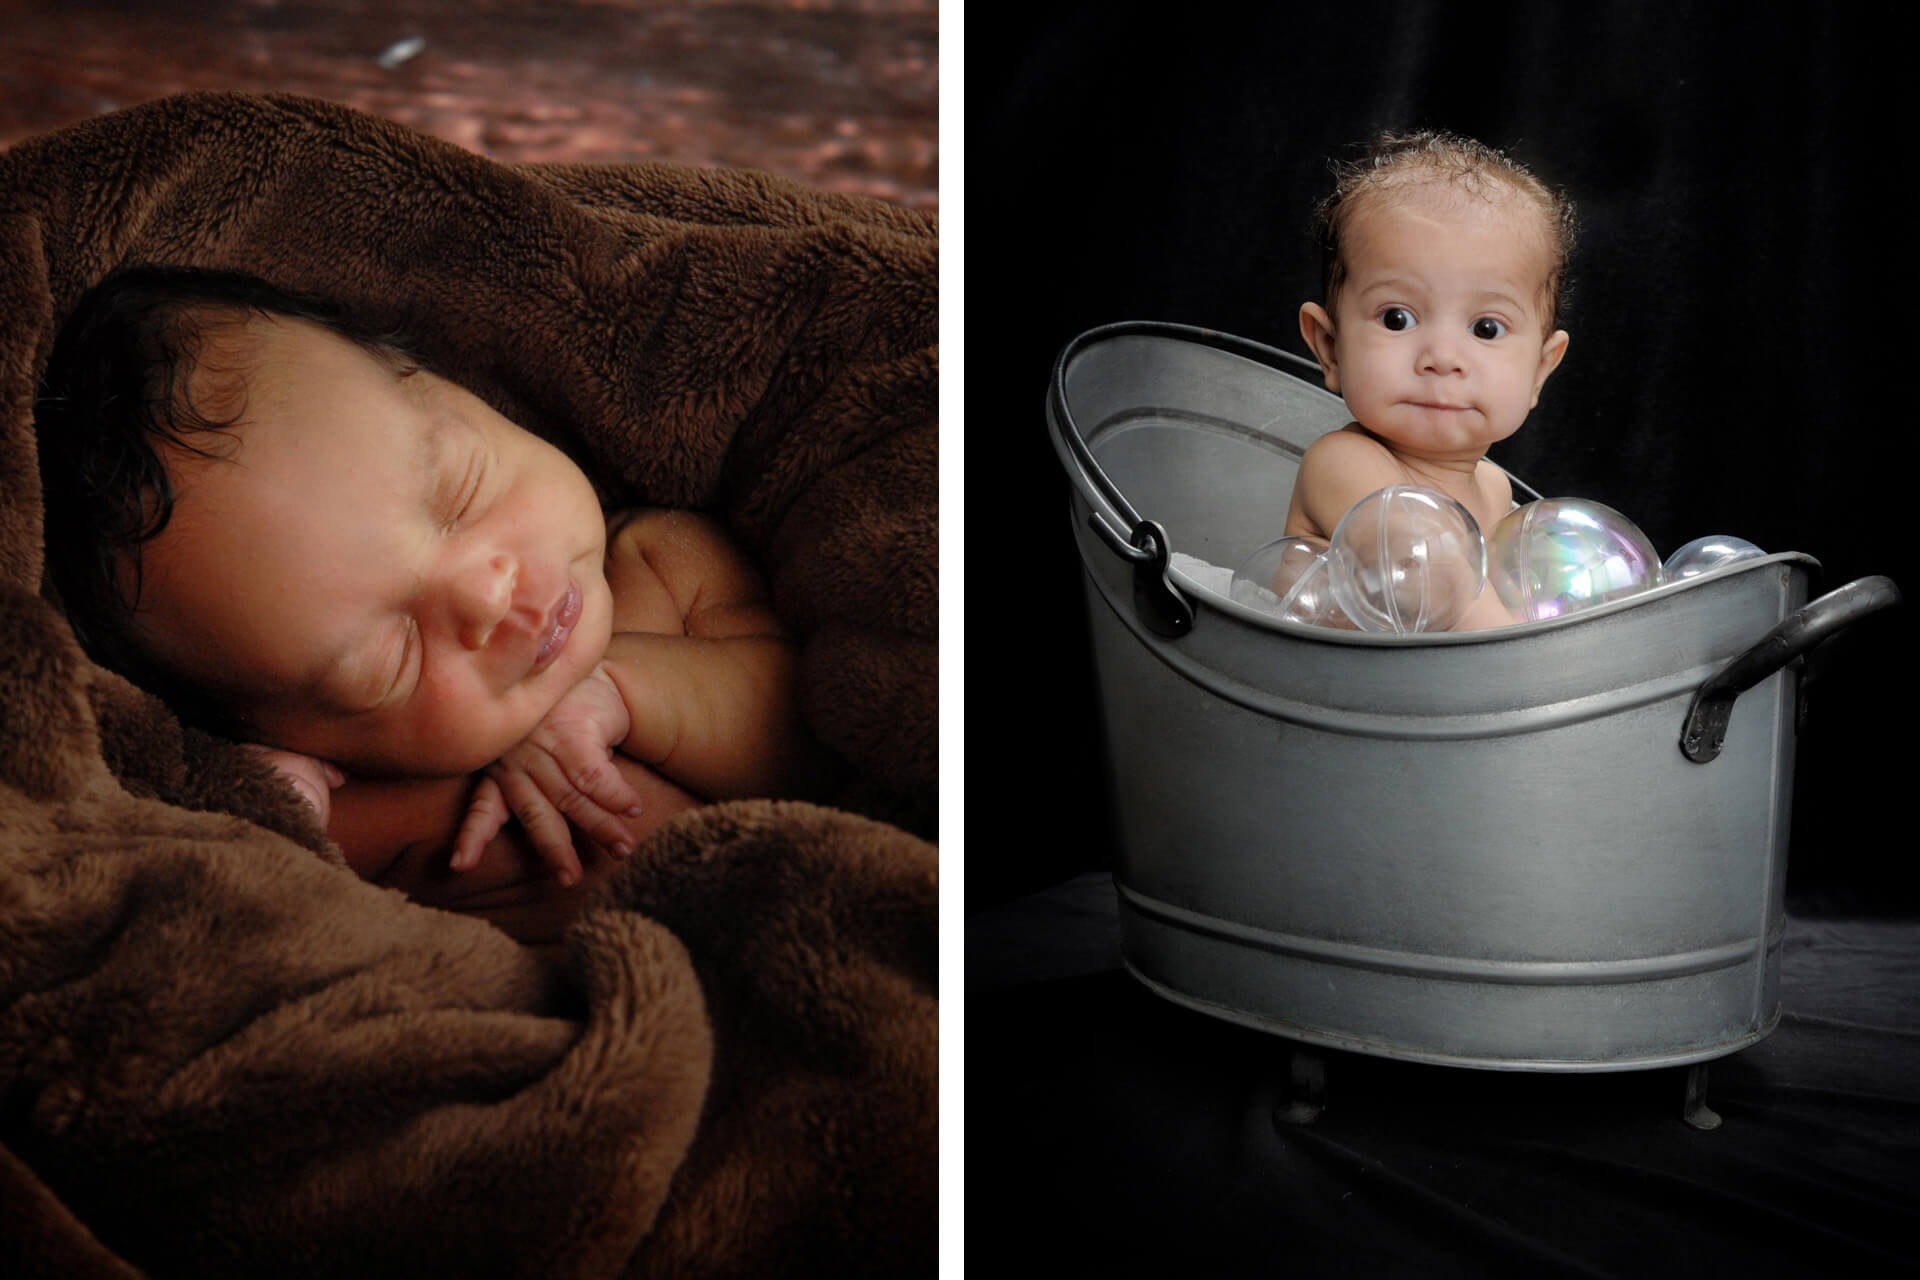 Best Detroit baby photographer captures classic newborn photography with a twist towards also capturing their personalities in metro Detroit, Michigan.